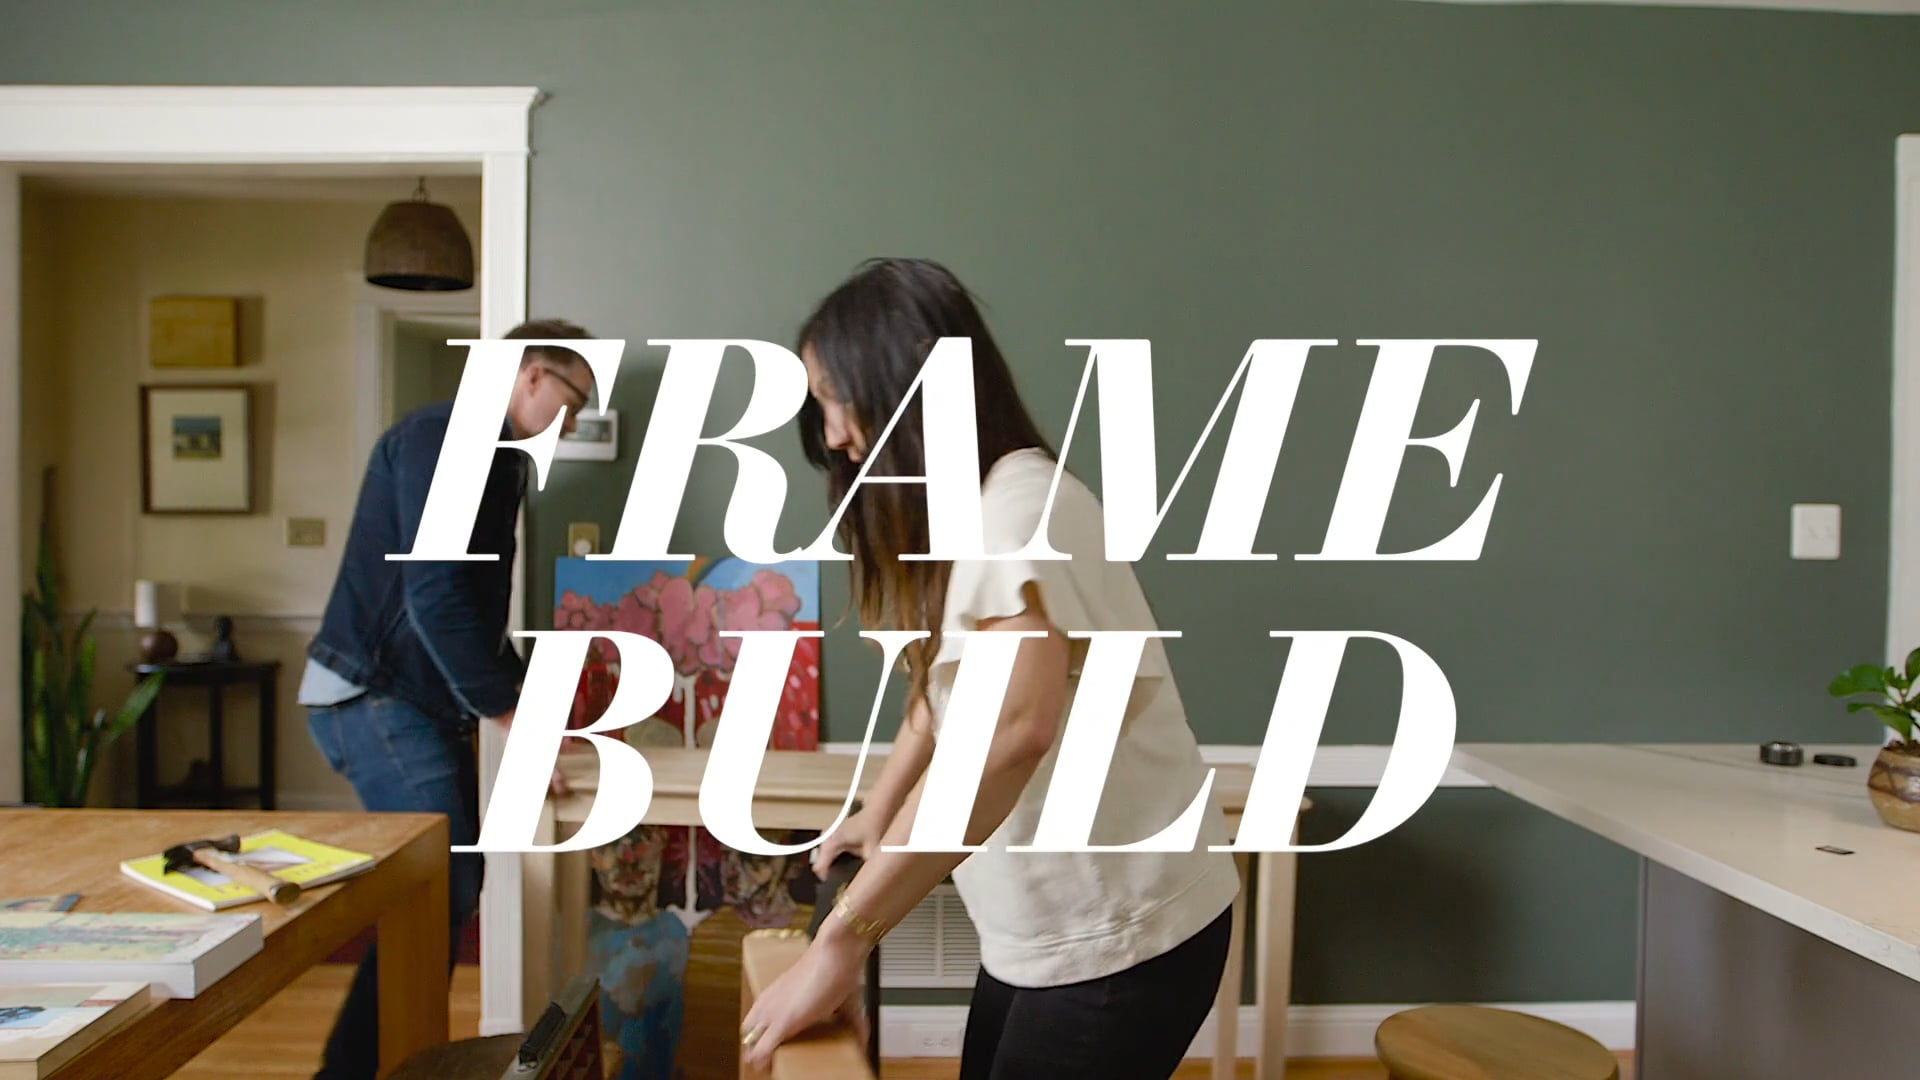 HOW WE HOMESY: Put a Frame on It!